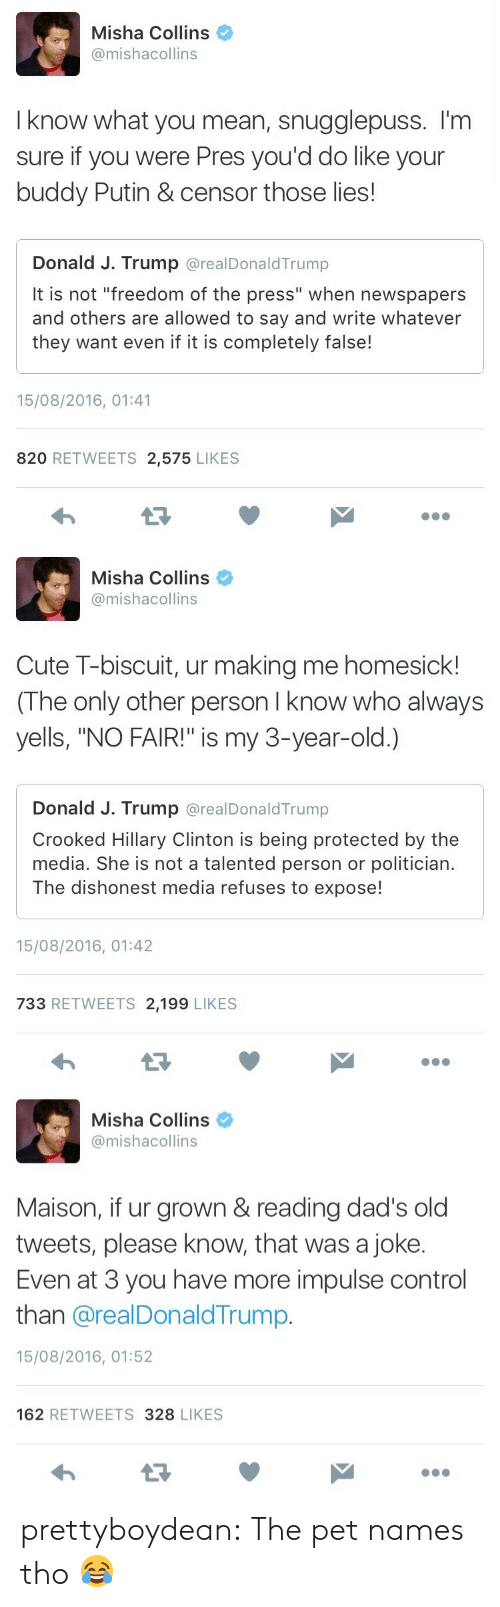 """Dishonest: Misha Collins  @mishacollins  I know what you mean, snugglepuss. I'm  sure if you were Pres you'd do like your  buddy Putin & censor those lies!  Donald J. Trump @realDonaldTrump  It is not """"freedom of the press"""" when newspapers  and others are allowed to say and write whatever  they want even if it is completely false!  15/08/2016, 01:41  820 RETWEETS 2,575 LIKES   Misha Collins  @mishacollins  Cute T-biscuit, ur making me homesick!  (The only other person I know who always  yells, """"NO FAIR!"""" is my 3-year-old.)  Donald J. Trump @realDonaldTrump  Crooked Hillary Clinton is being protected by the  media. She is not a talented person or politician  The dishonest media refuses to expose!  15/08/2016, 01:42  733 RETWEETS 2,199 LIKES   Misha Collins  @mishacollins  Maison, if ur grown & reading dad's old  tweets, please know, that was a joke.  Even at 3 you have more impulse control  than @realDonaldTrump.  15/08/2016, 01:52  162 RETWEETS 328 LIKES prettyboydean:  The pet names tho 😂"""